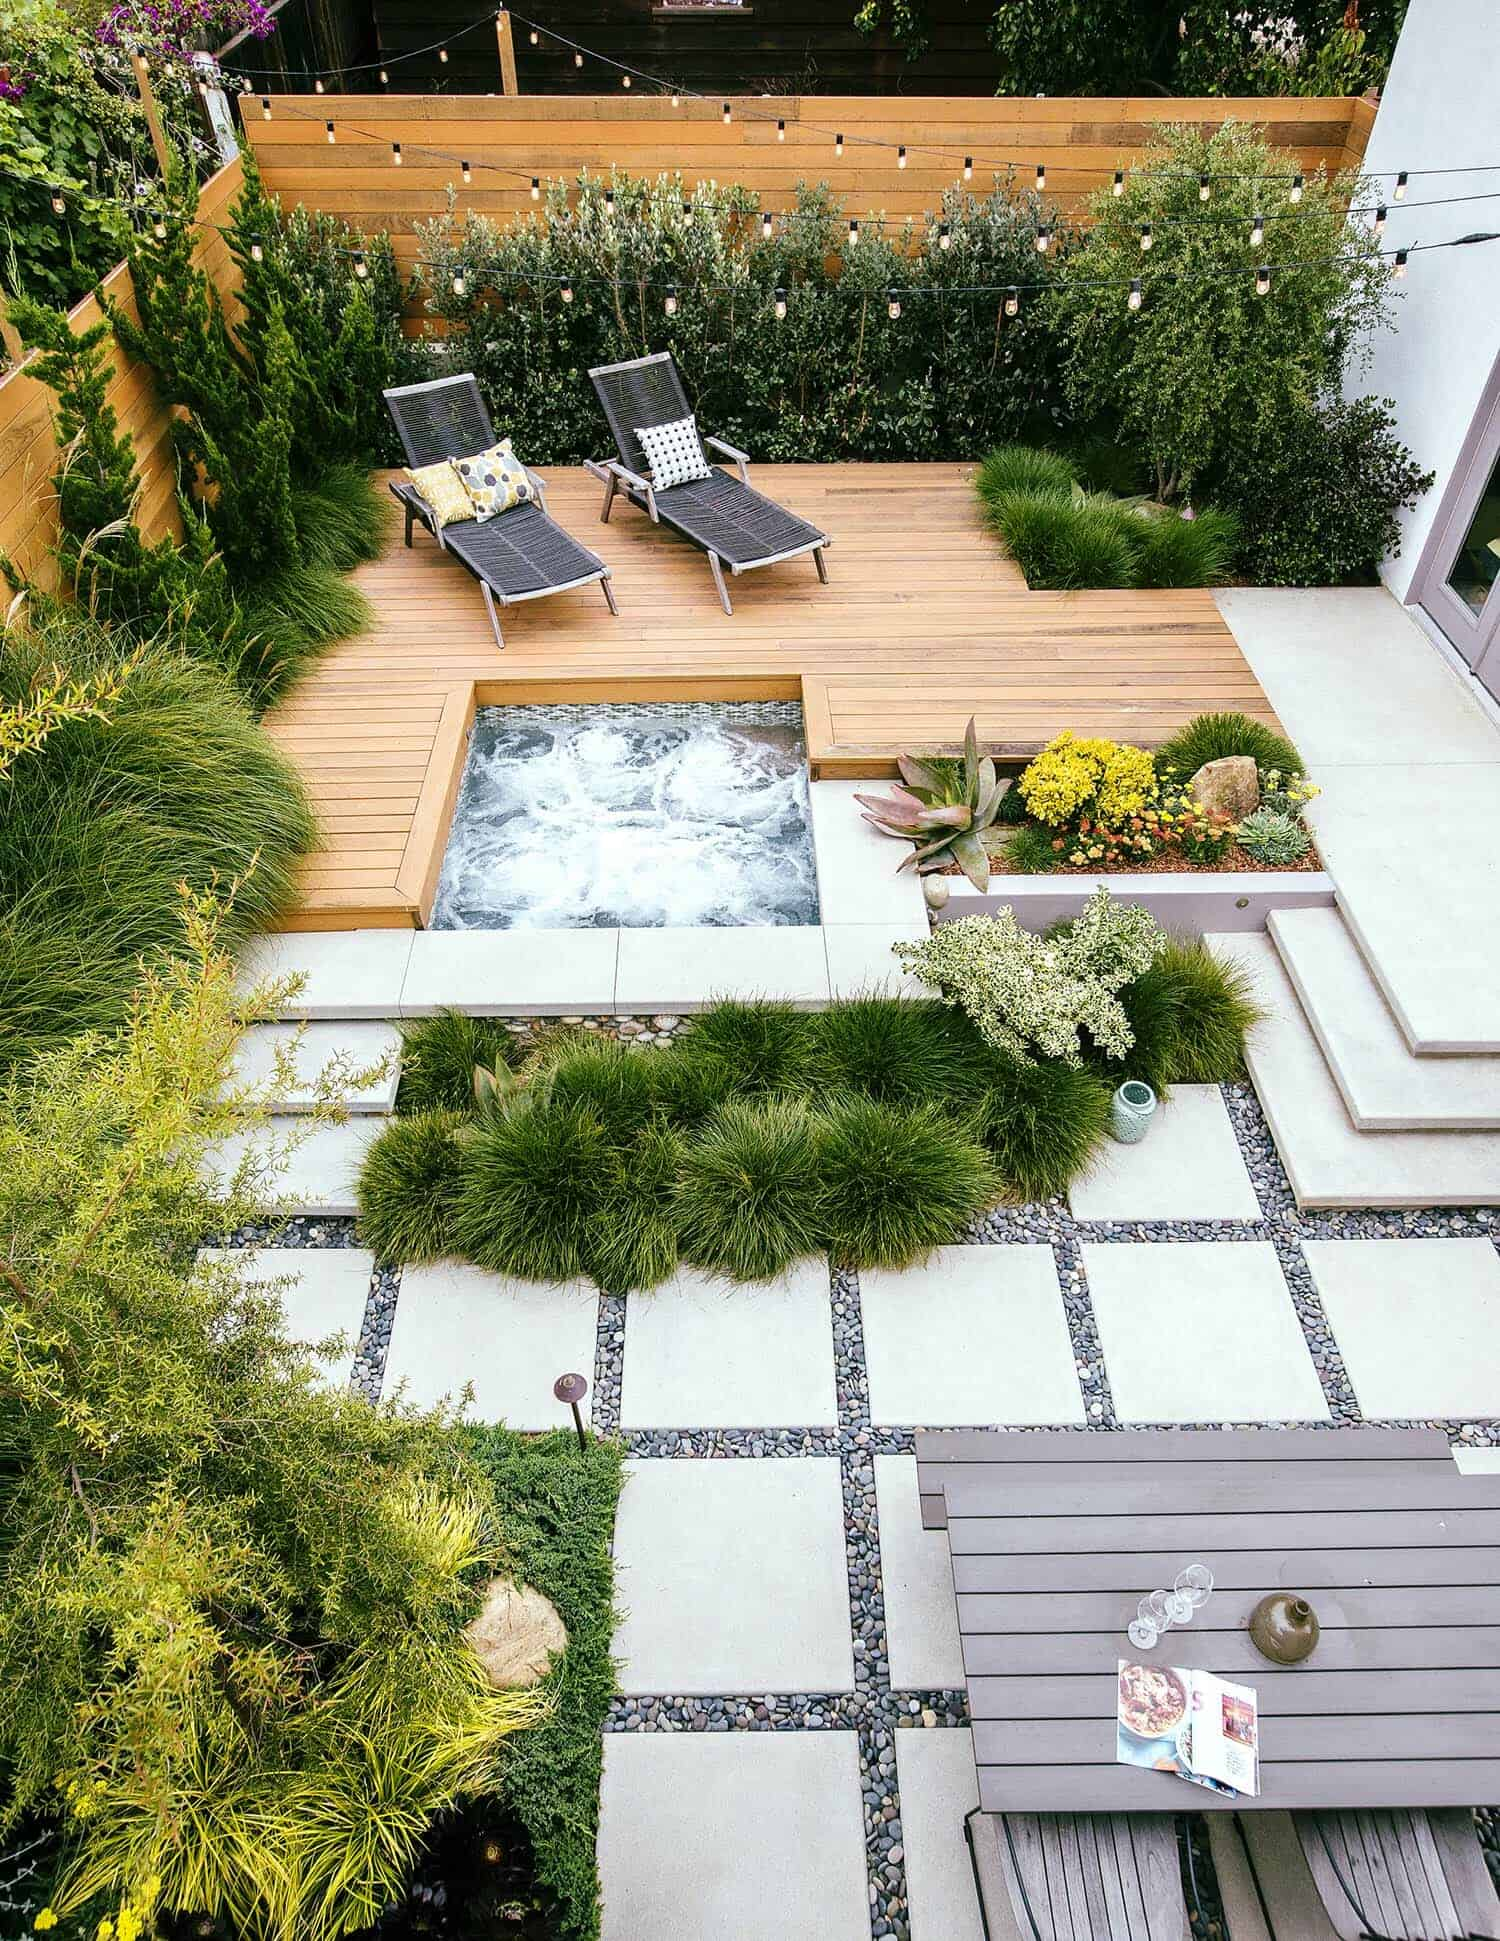 35 brilliant and inspiring patio ideas for outdoor living